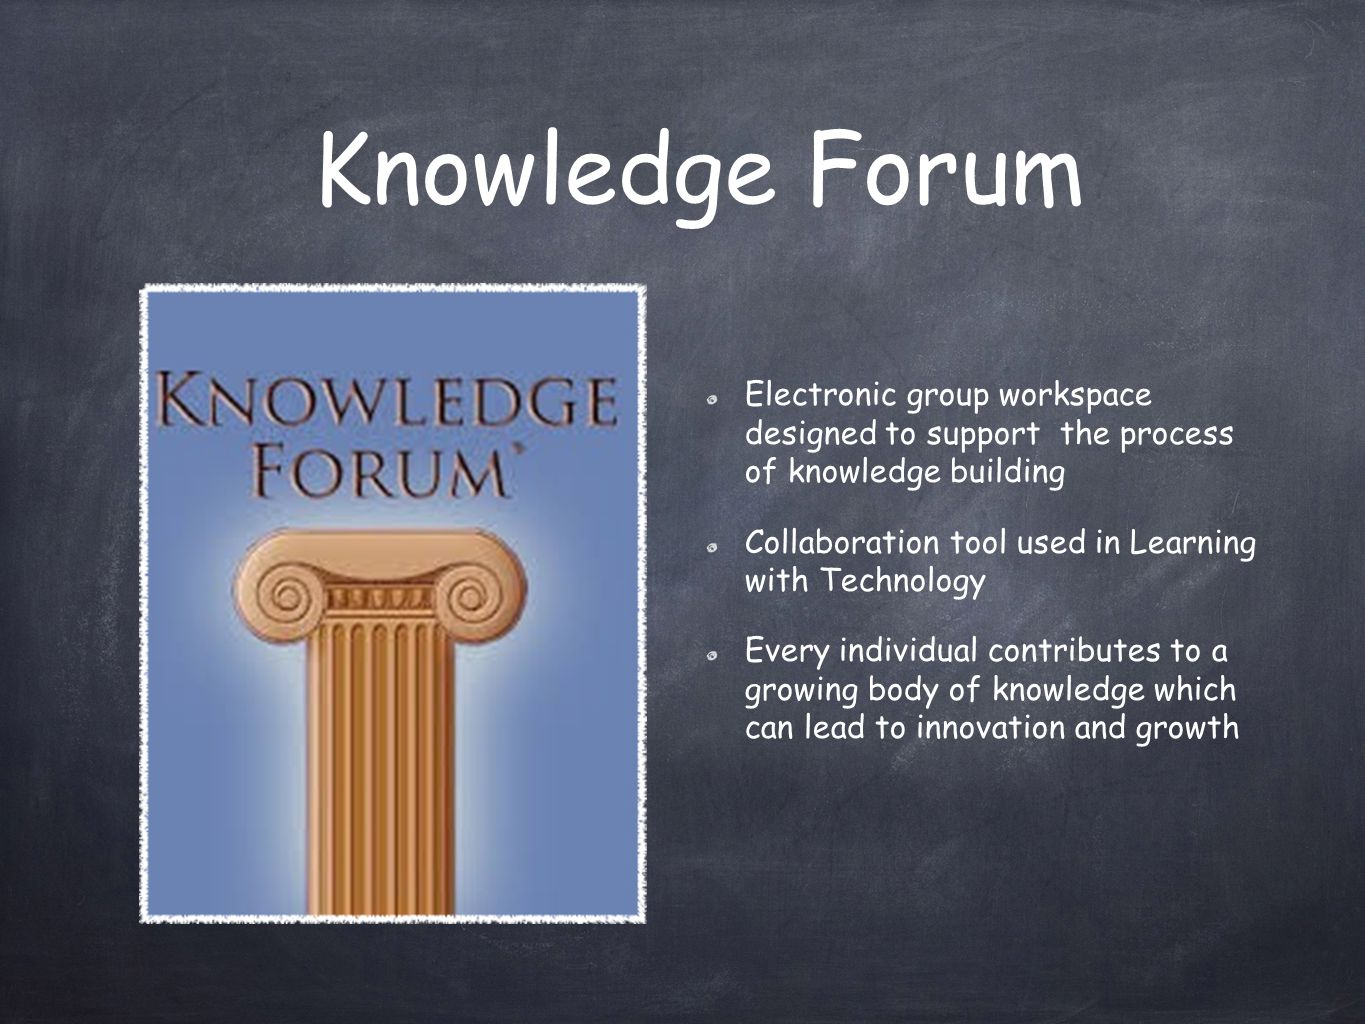 Knowledge Forum Electronic group workspace designed to support the process of knowledge building Collaboration tool used in Learning with Technology Every individual contributes to a growing body of knowledge which can lead to innovation and growth